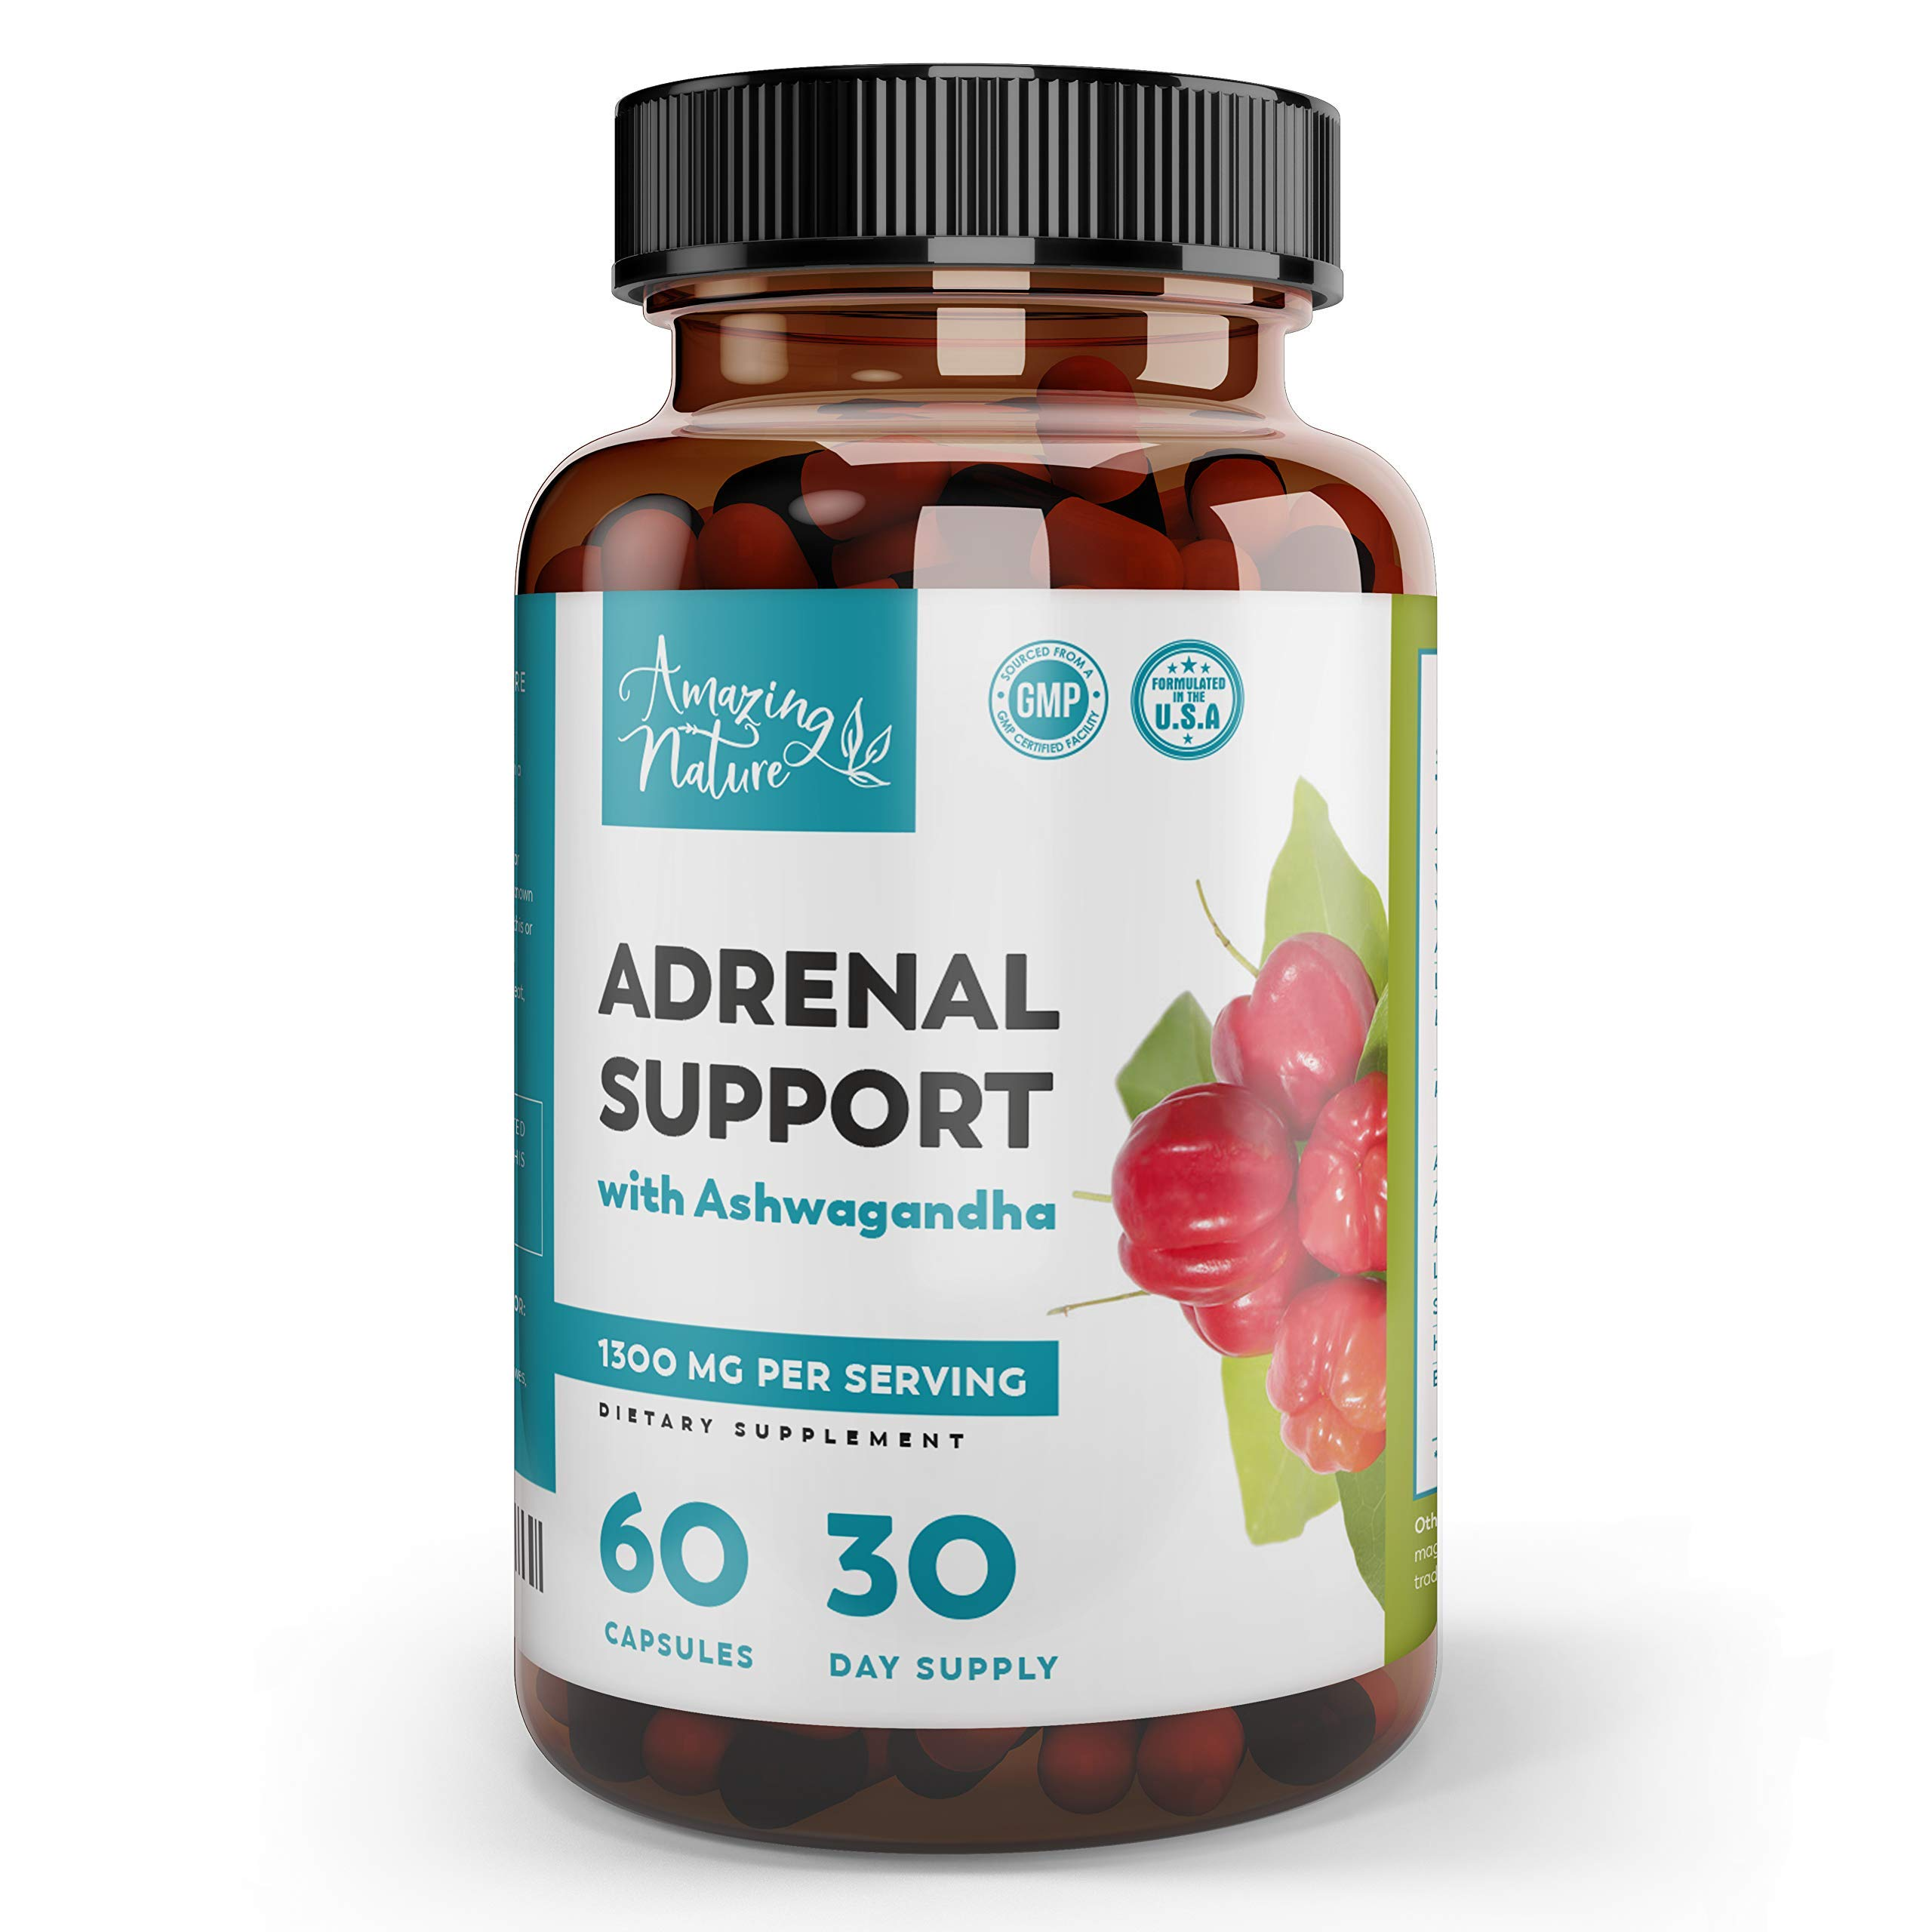 Adrenal Support & Cortisol Manager - Best Stress Relief Supplements for Adrenal Fatigue, Improved Mood & Focus & Energy Pills with Adaptogenic Herbs - Ashwaganda, Rhodiola Rosea, Ginseng, Licorice